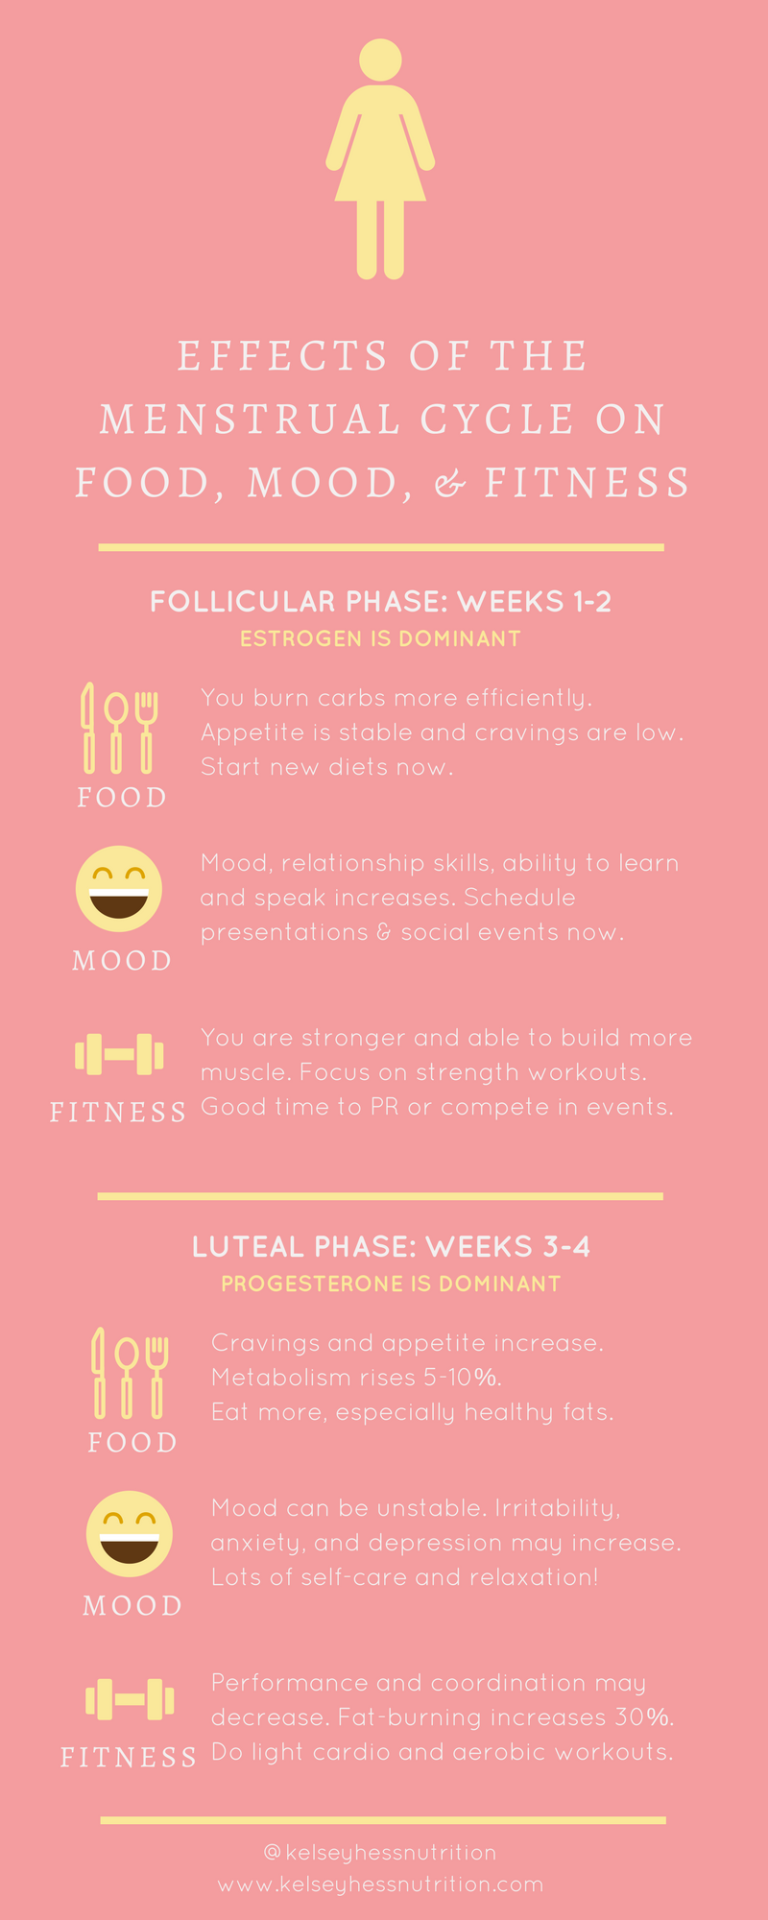 How Your Menstrual Cycle Affects Your Food, Mood, and Fitness